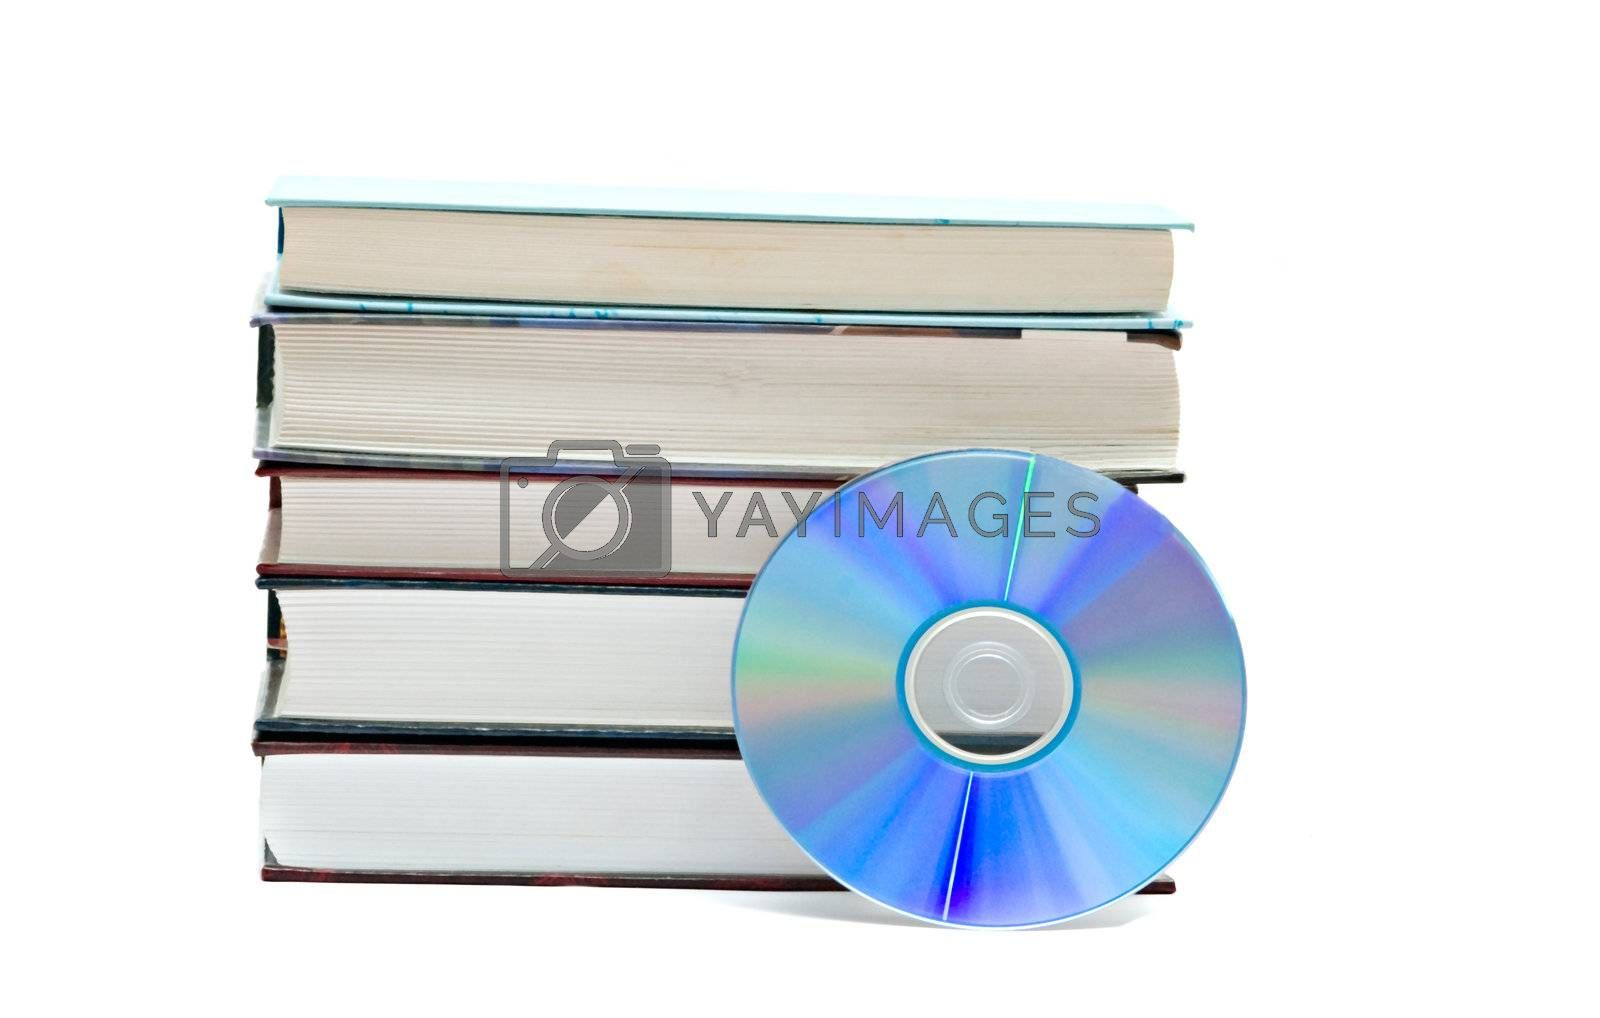 Pile of books and DVD disk as symbols of old and new methods of information storage